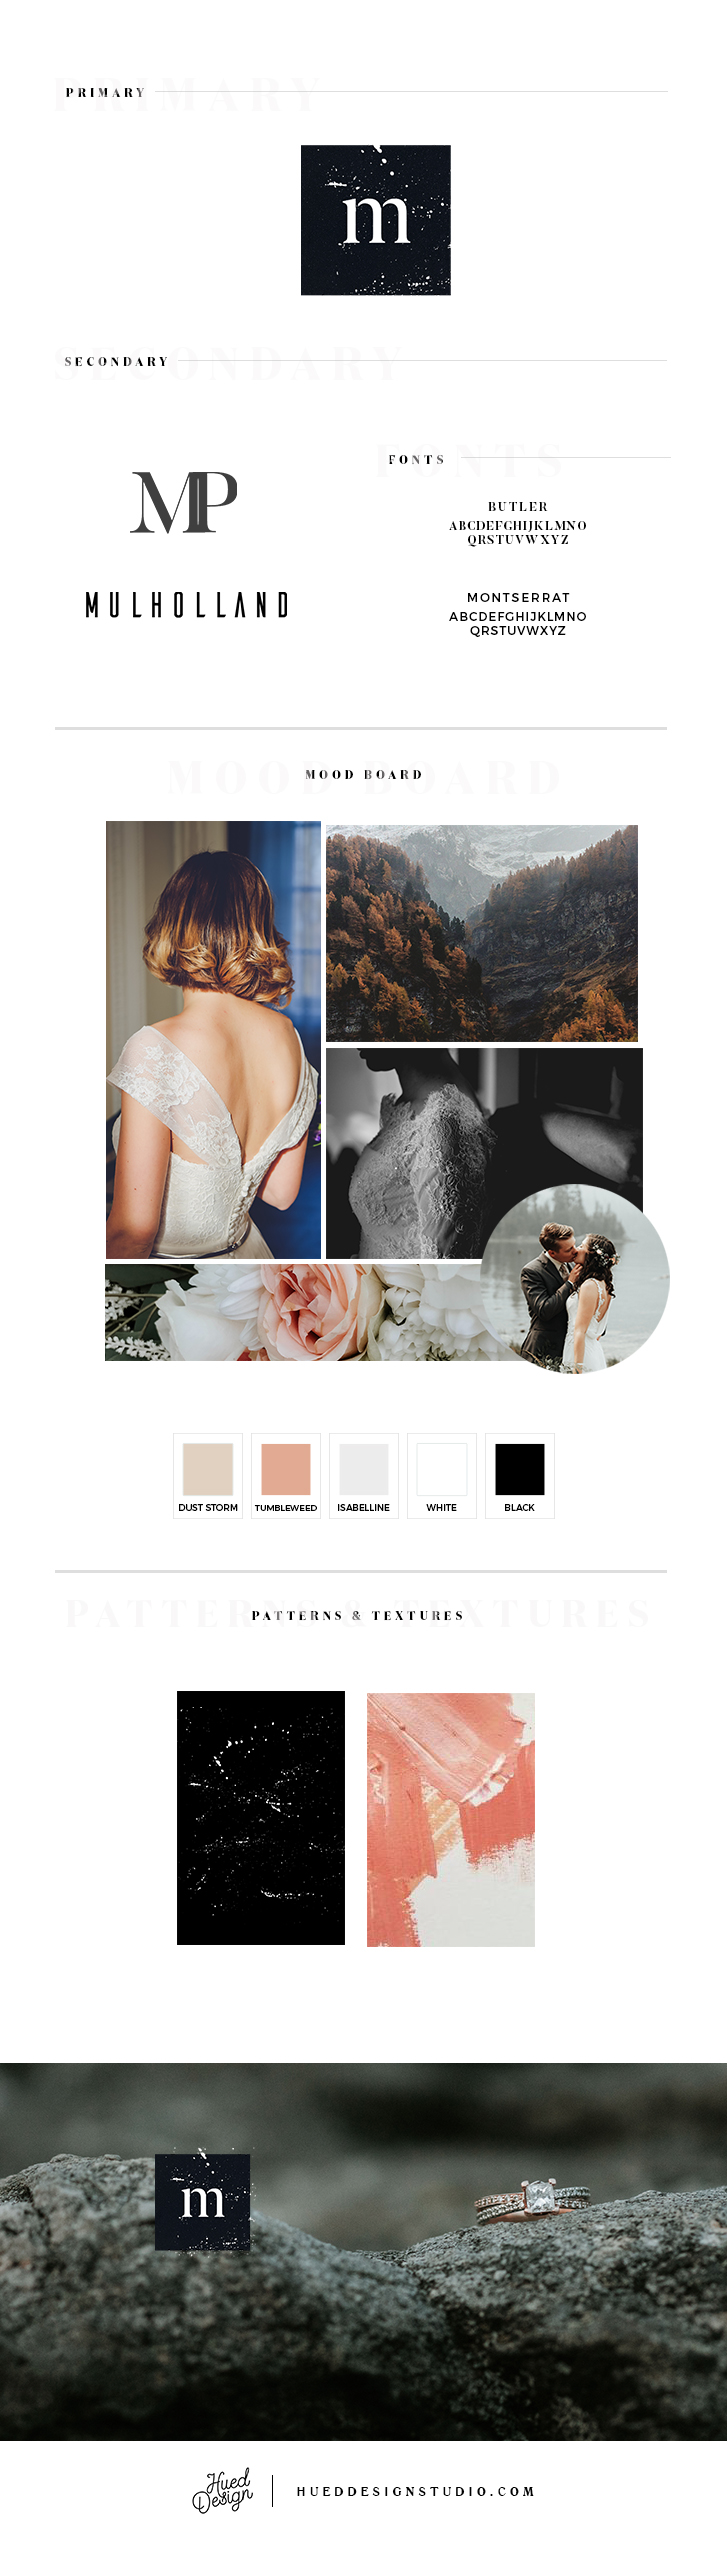 Branding for photographers | starting a photography business | photography business | branding | Squarespace web designer | wedding photography | starting a wedding photography business